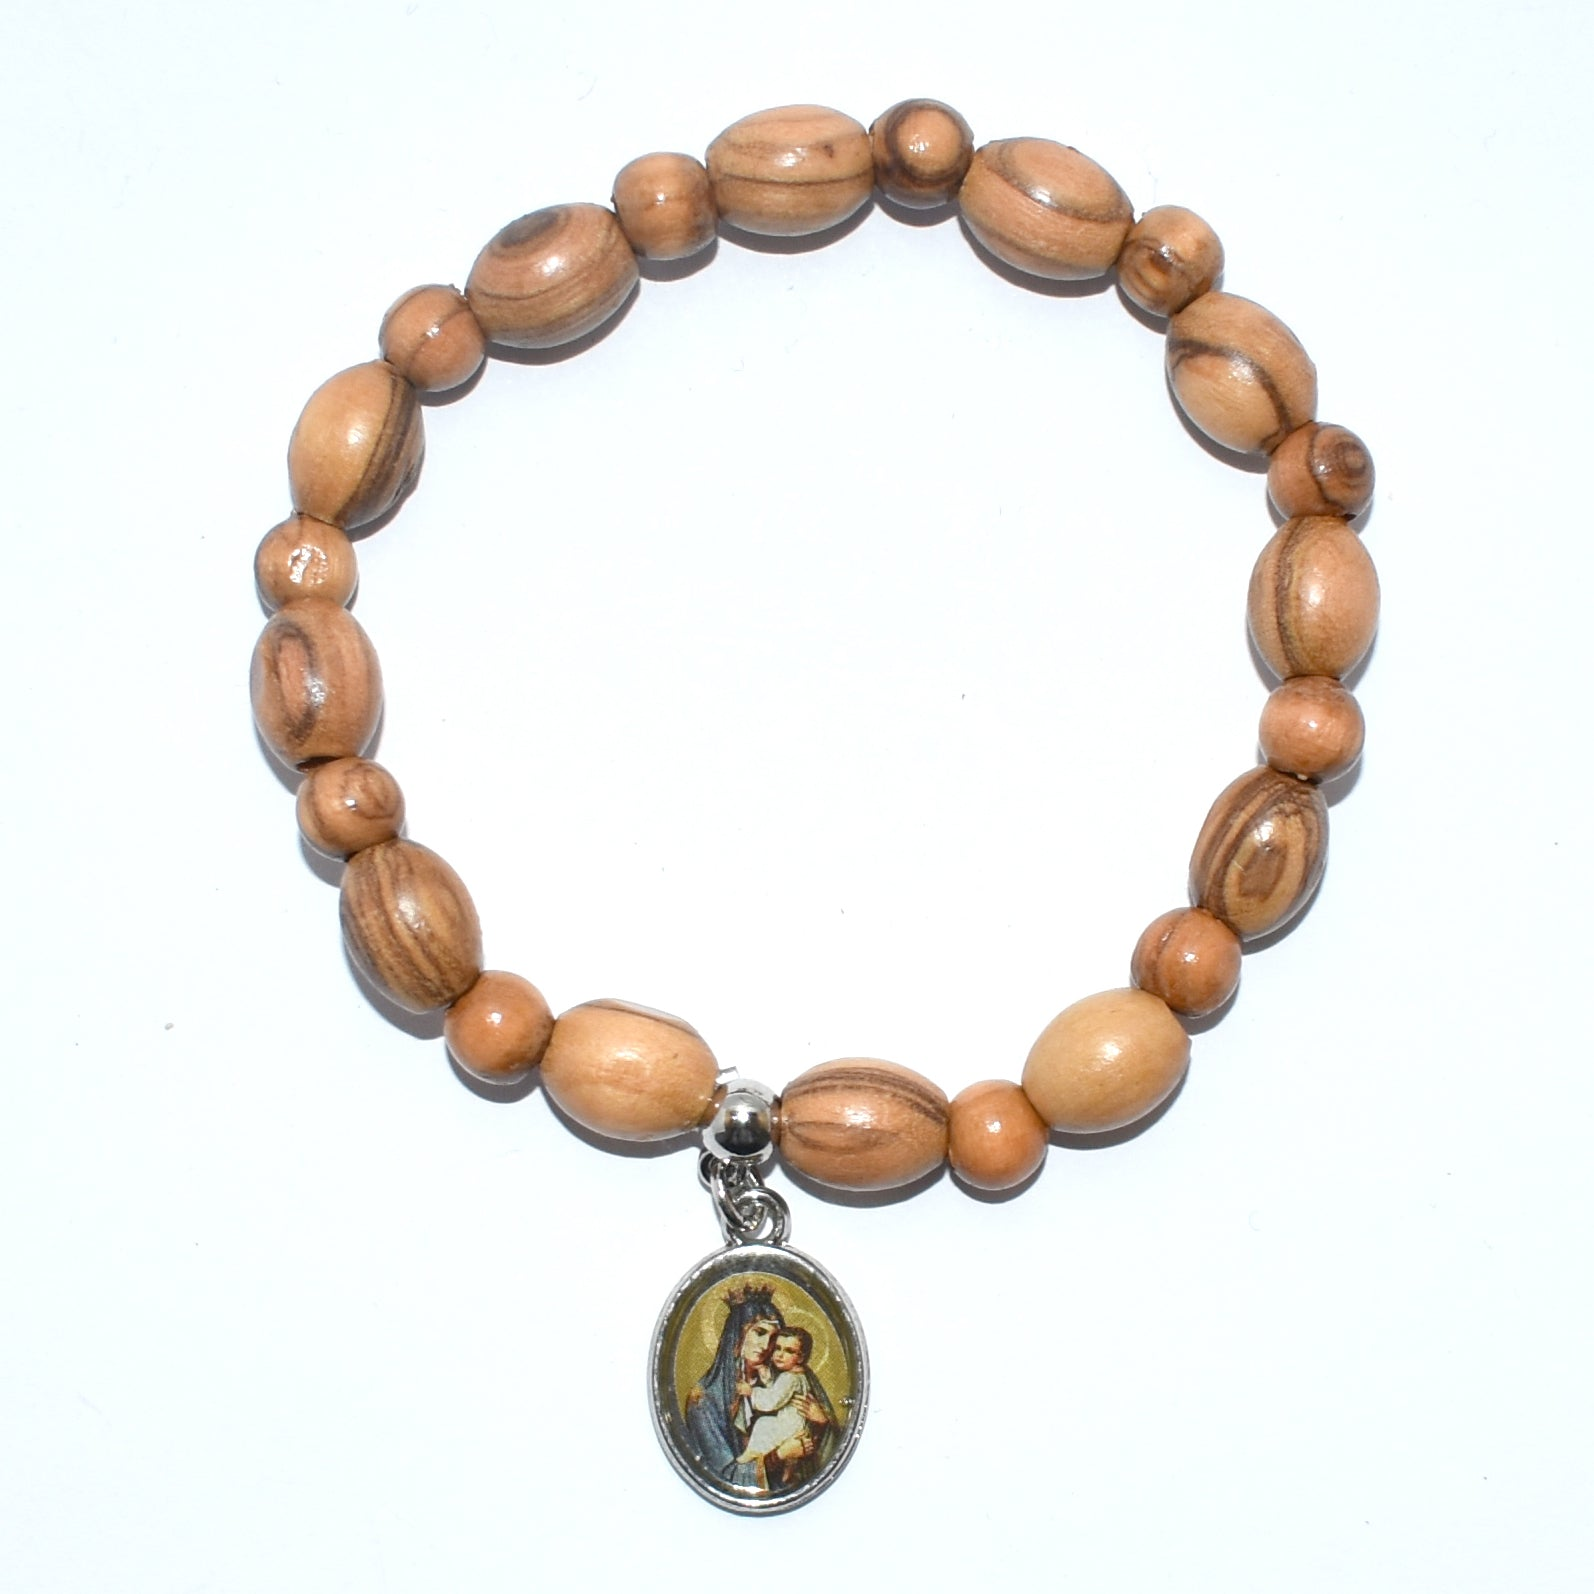 Olive Wood Oval 9*6 mm Bracelet with Mary and the Child Pendant